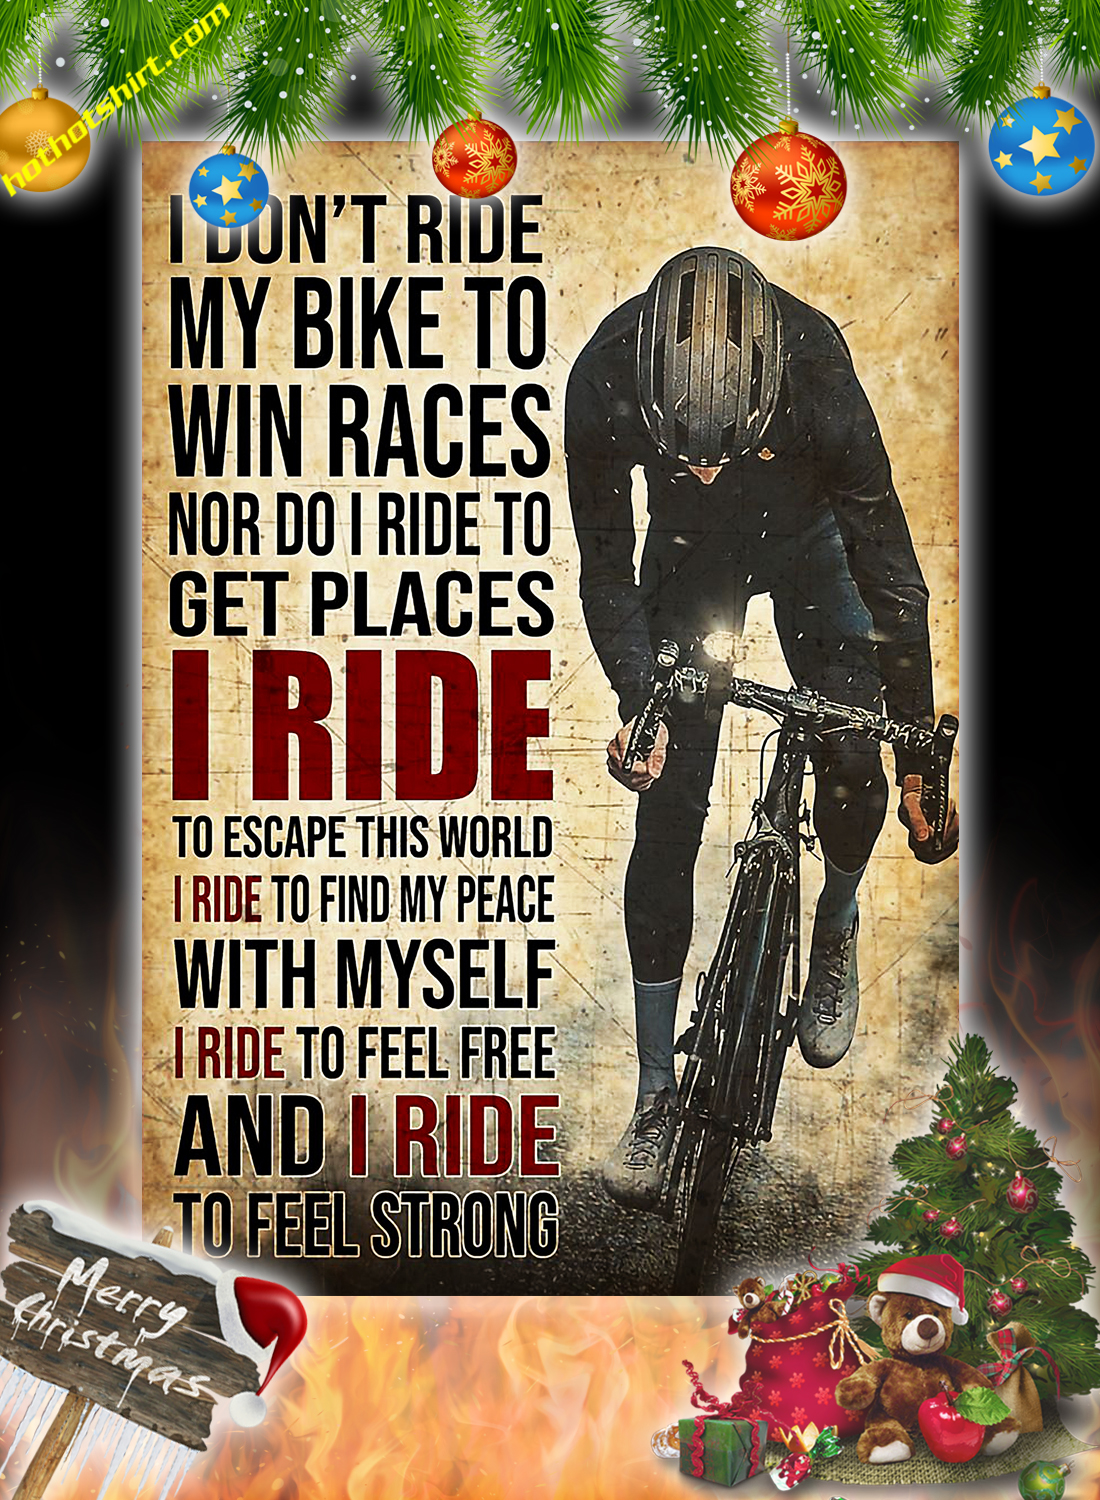 I Don't Ride My Bike To Win Races Poster And Canvas 2